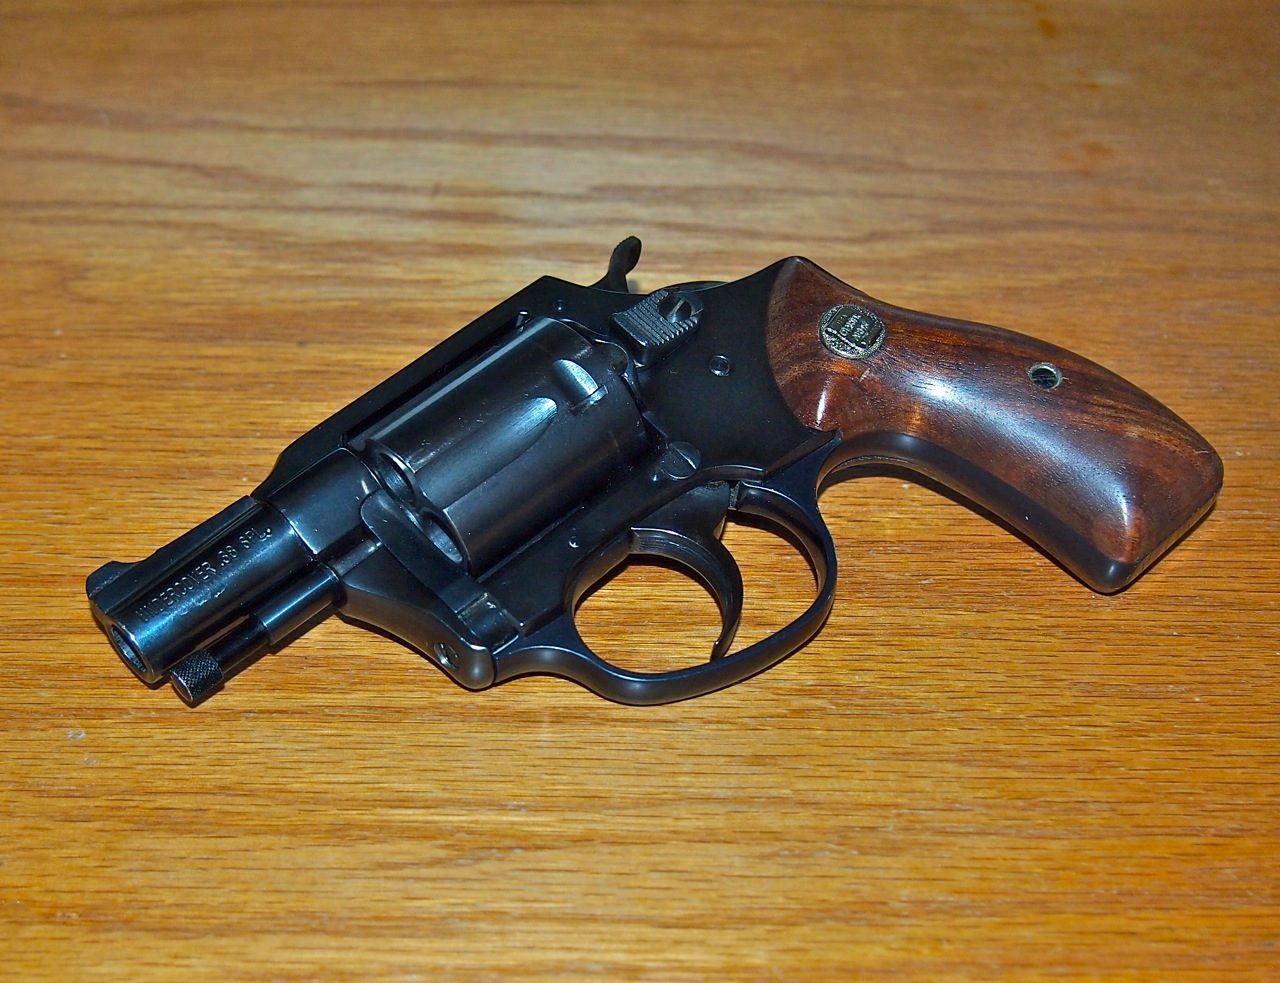 Charter Arms Undercover. Who owns one?-undercover.jpg